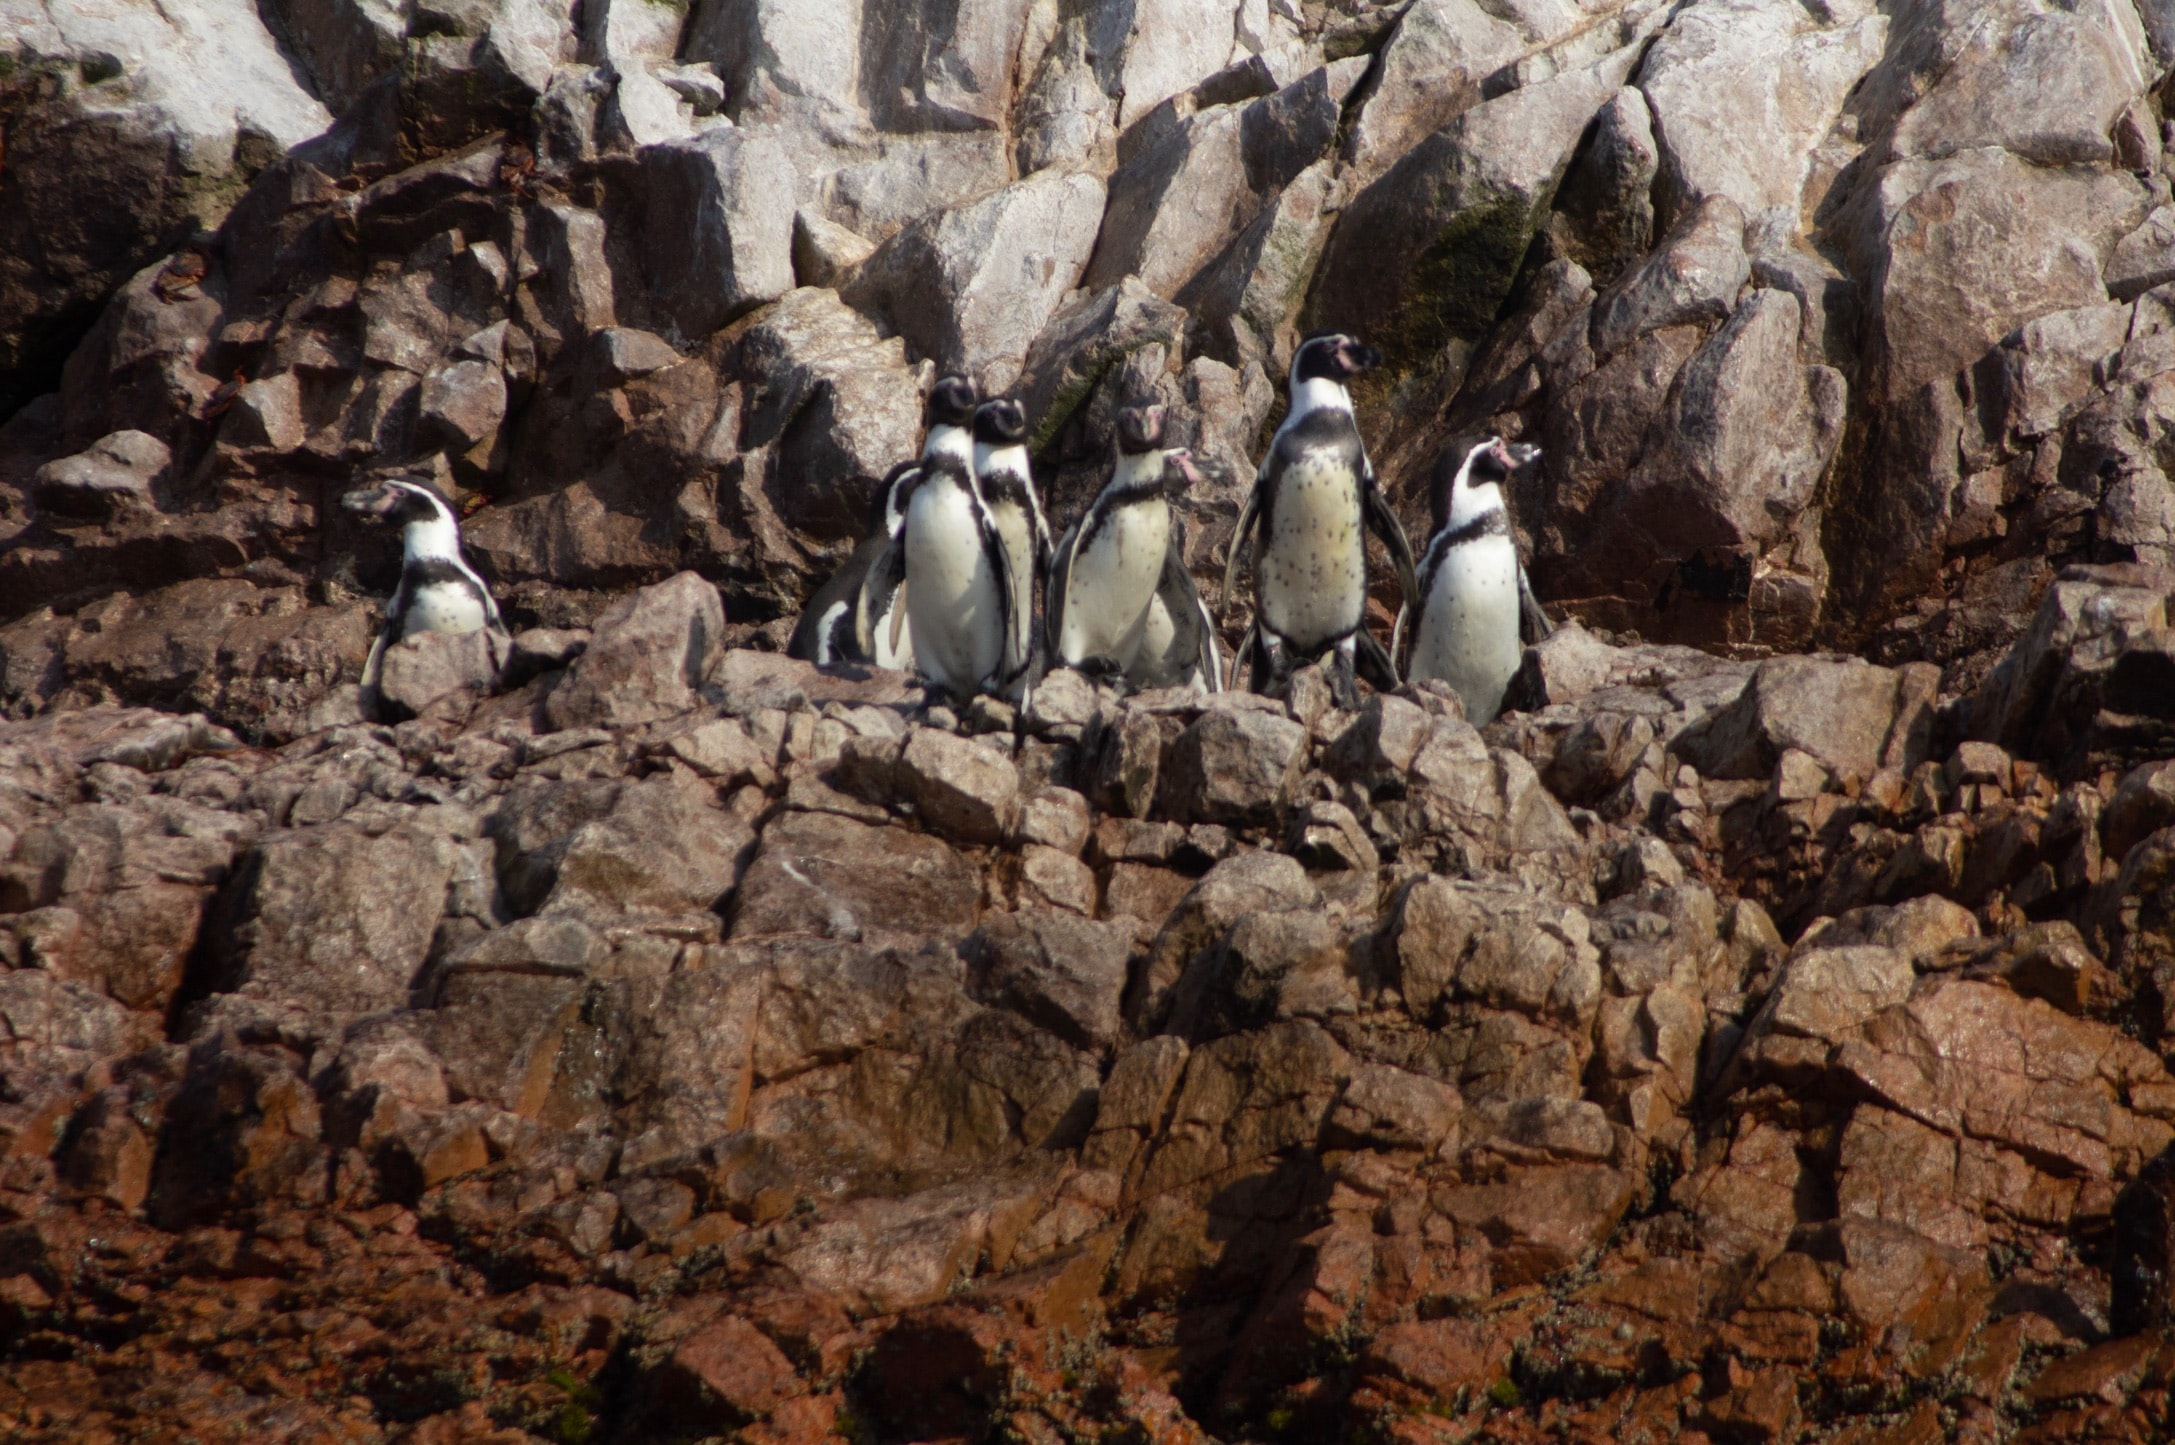 black and white penguins standing on brown boulders during daytime